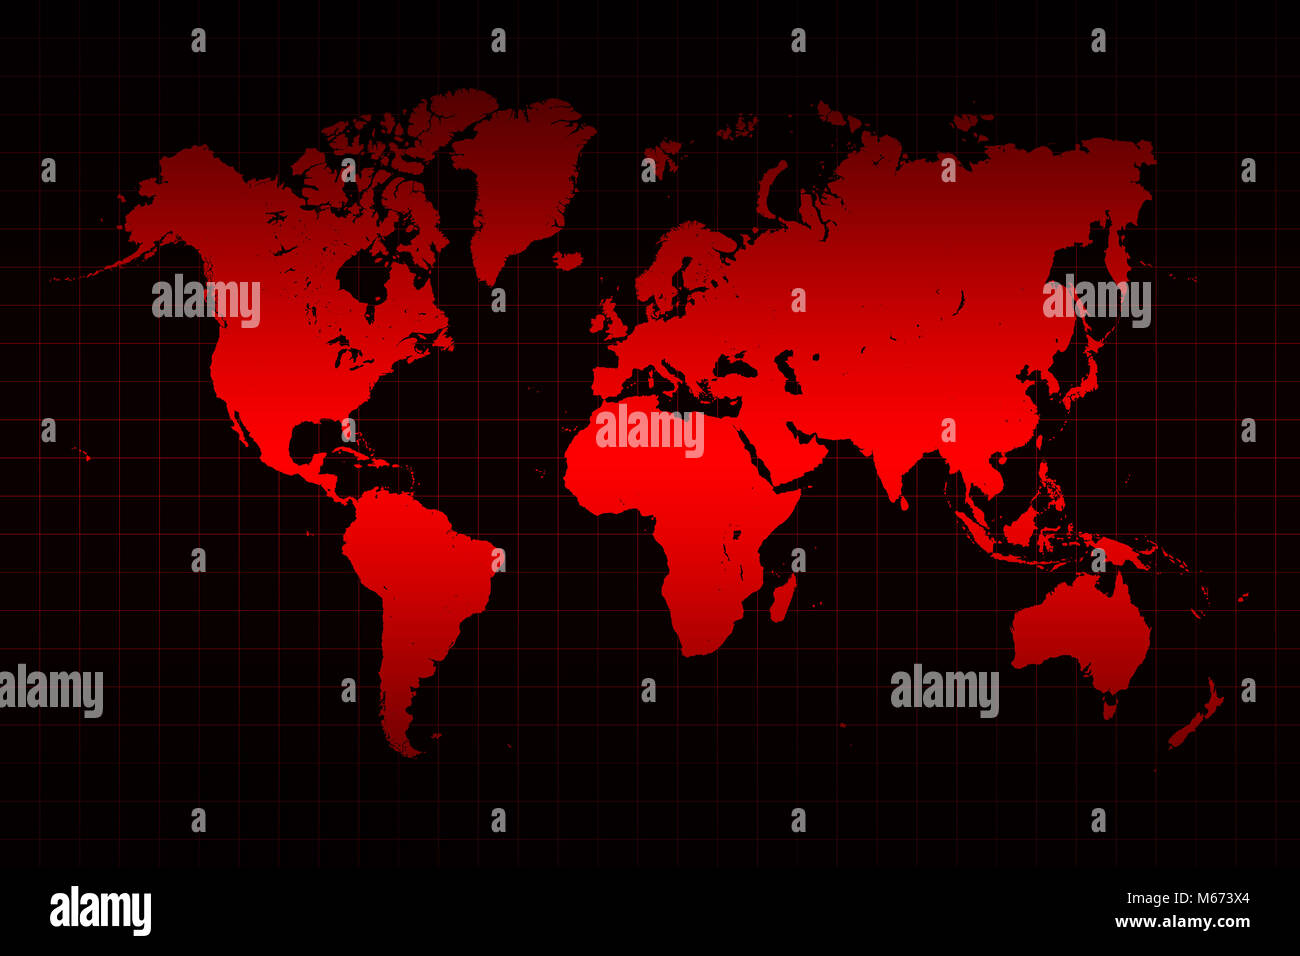 World map and grid line in red and black background stock photo world map and grid line in red and black background gumiabroncs Images